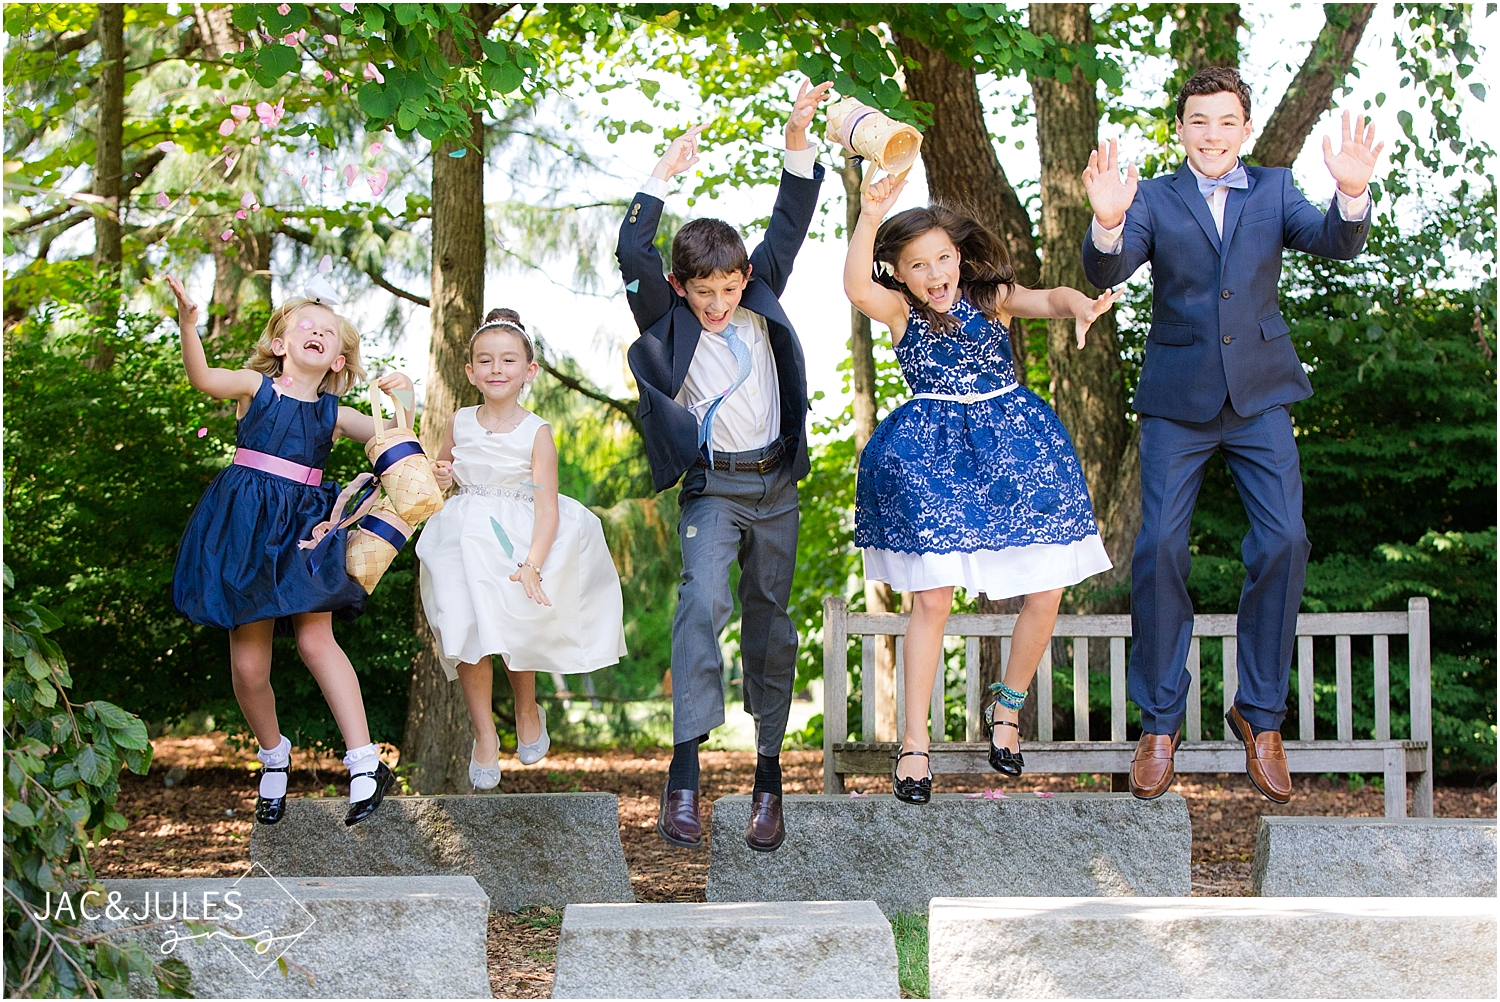 jacnjules takes a fun photo of the kids at a wedding at Grounds for Sculpture in Hamilton, NJ